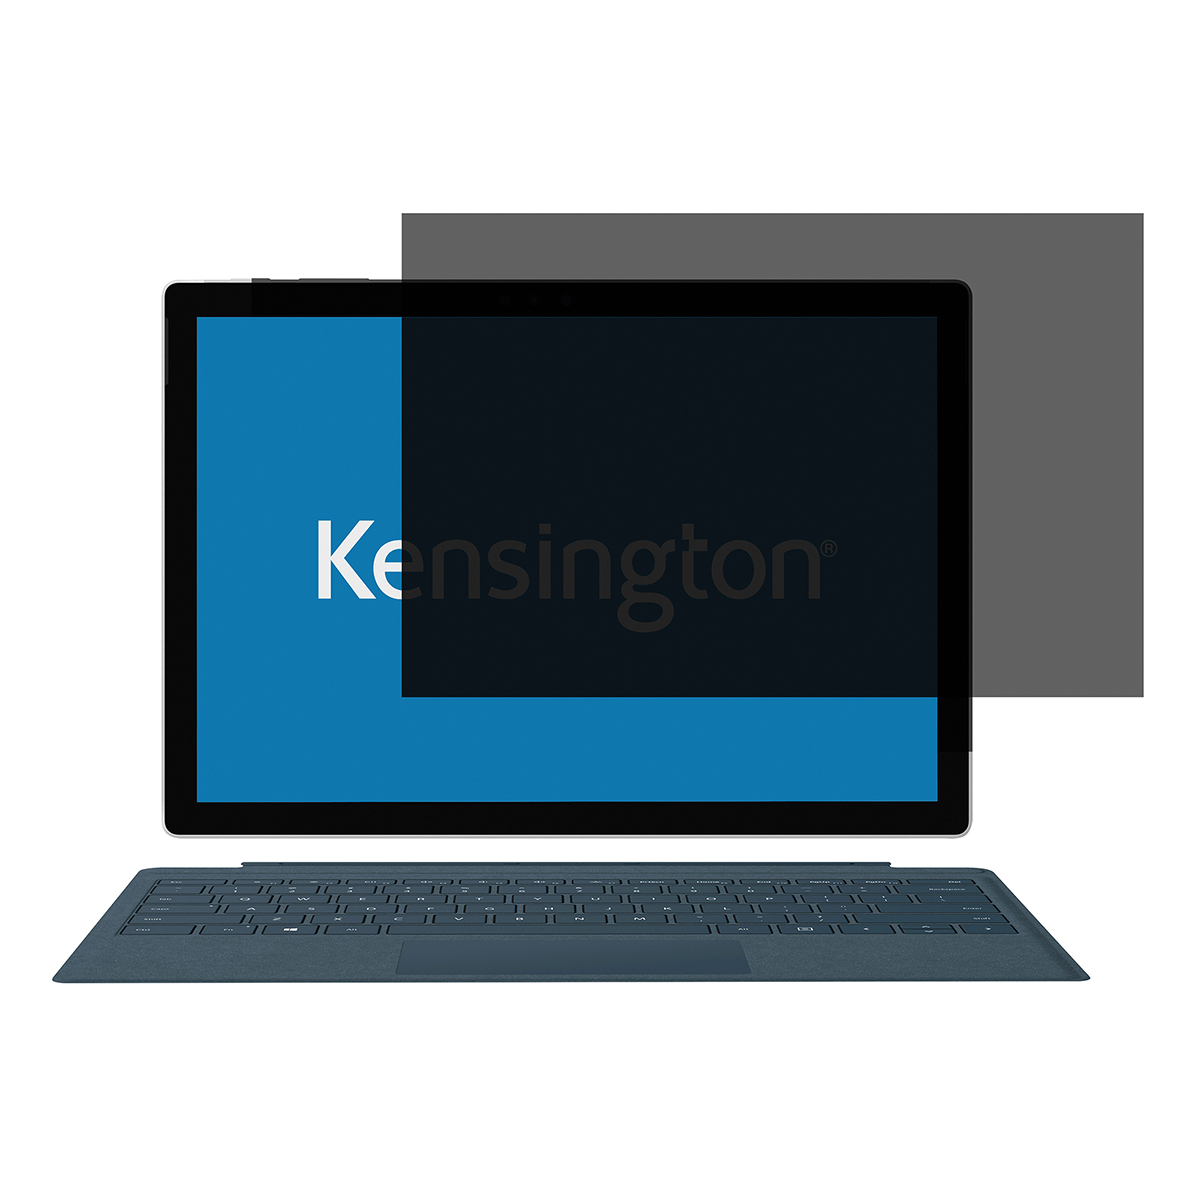 Kensington 626445 Privacy Filter 2 Way Adhesive for Microsoft Surface Pro 6 2017